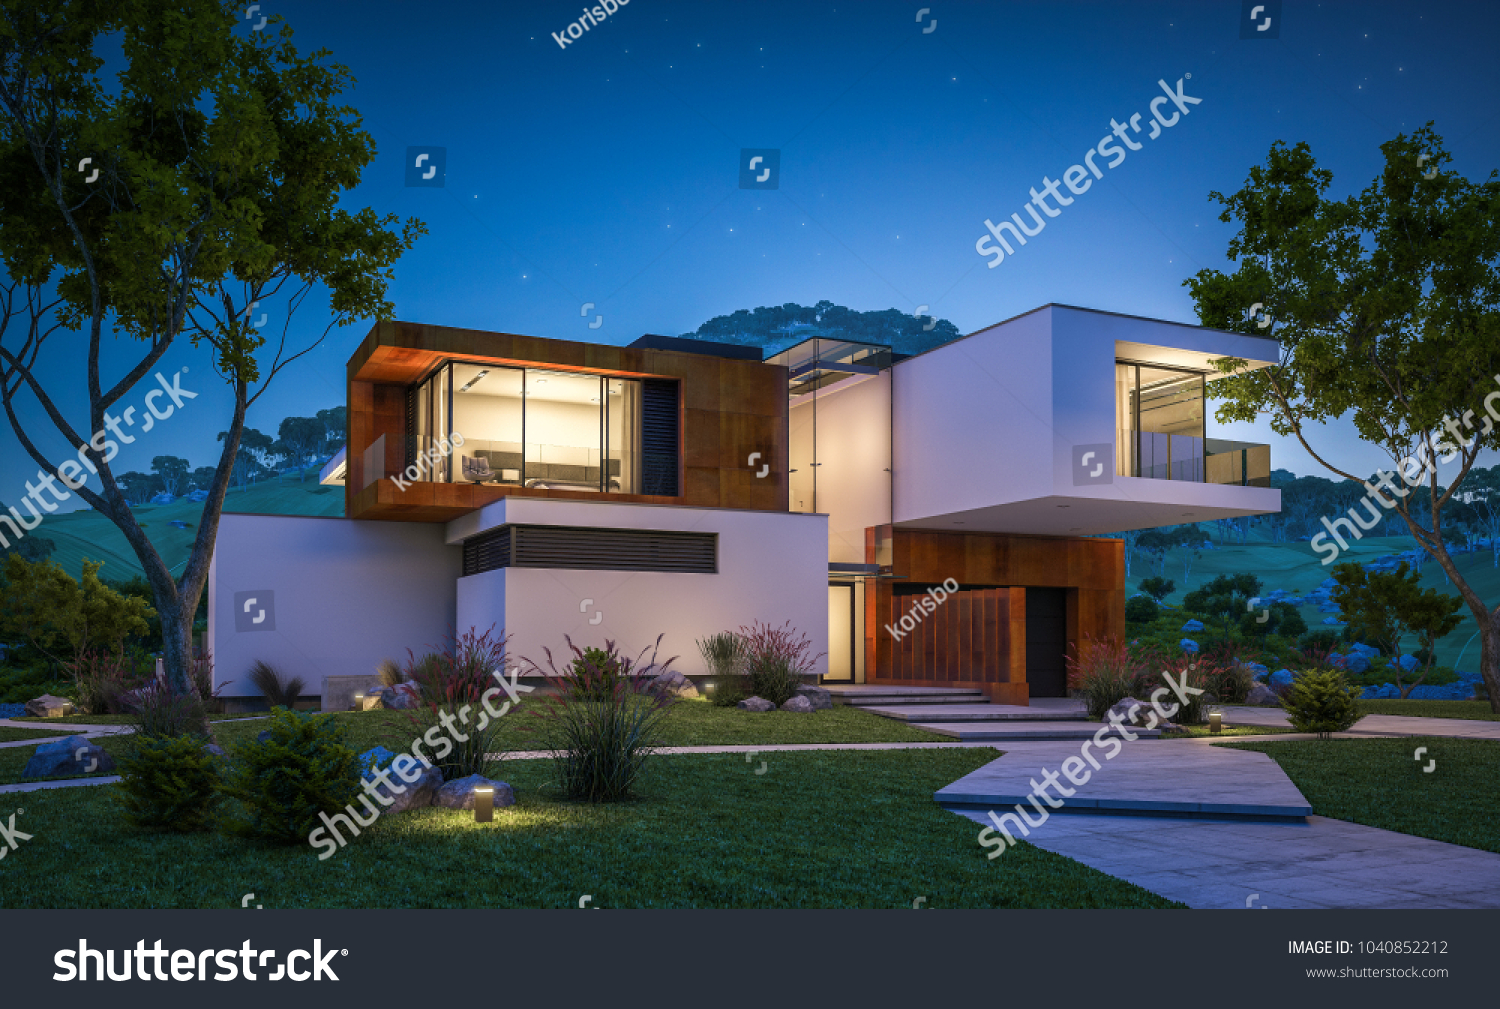 stock-photo-d-rendering-of-modern-cozy-house-by-the-river-with-garage-for-sale-or-rent-with-beautiful-1040852212